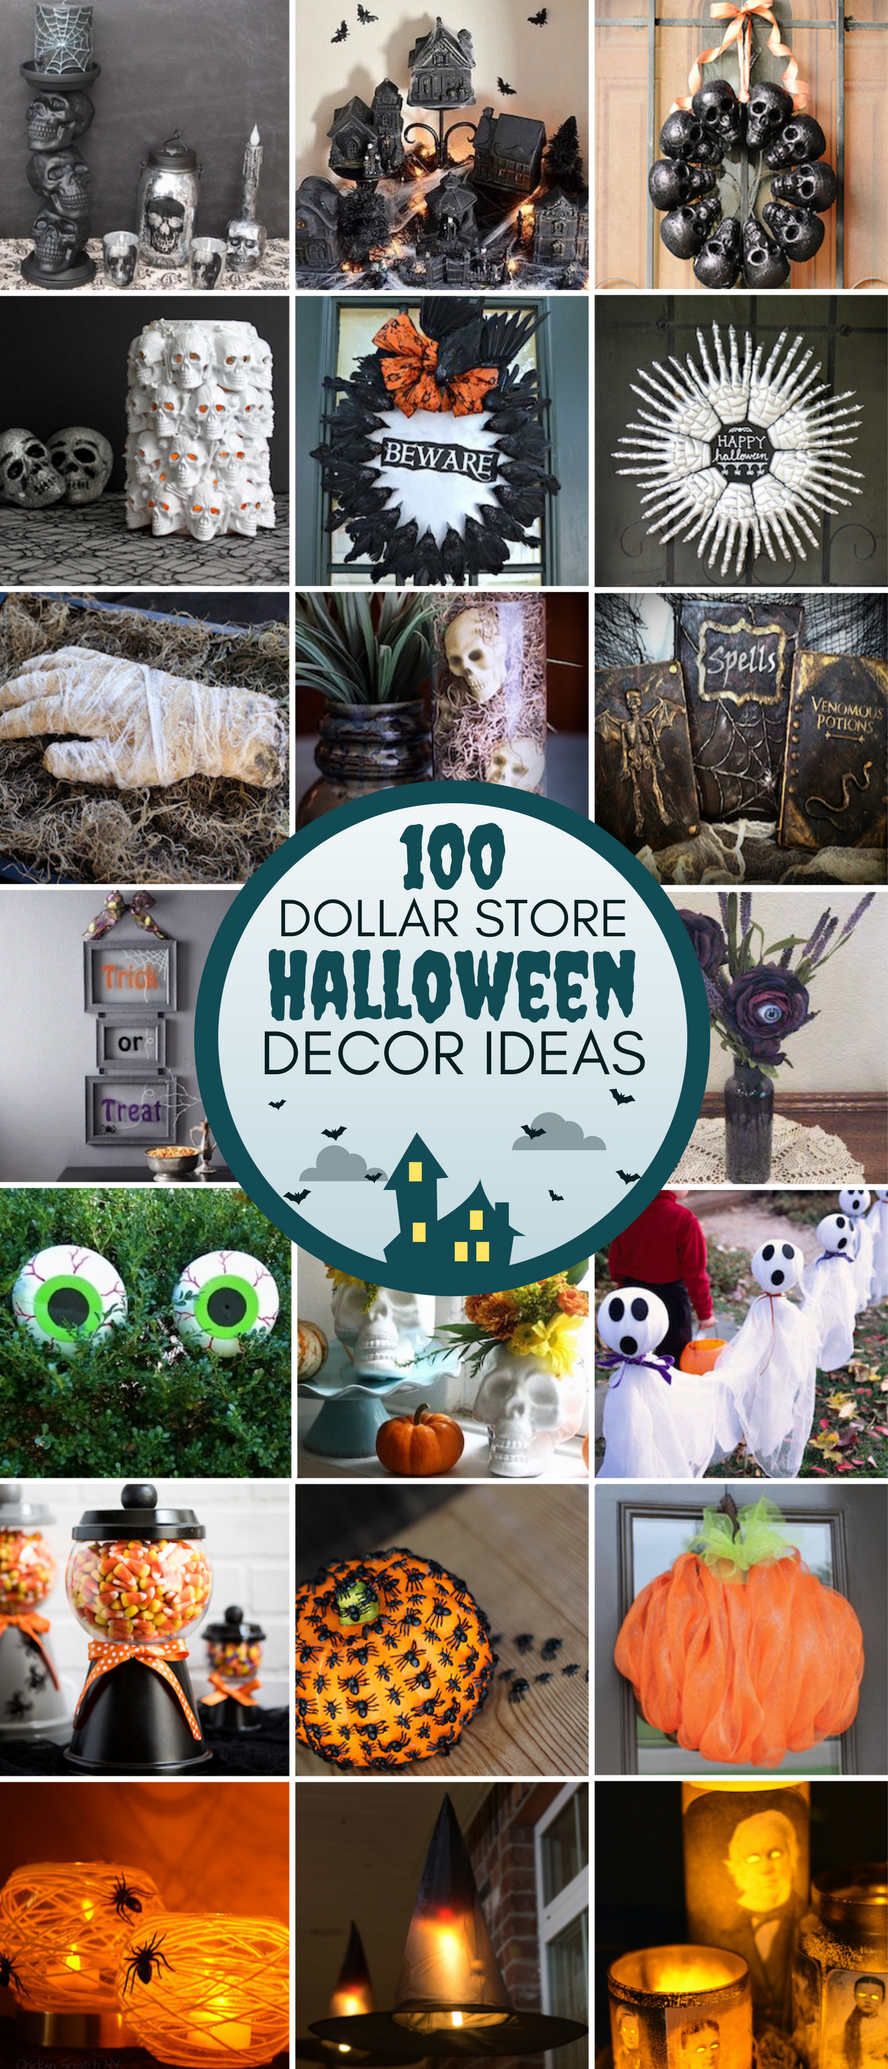 100 Dollar Store Halloween Decorations Dollar store